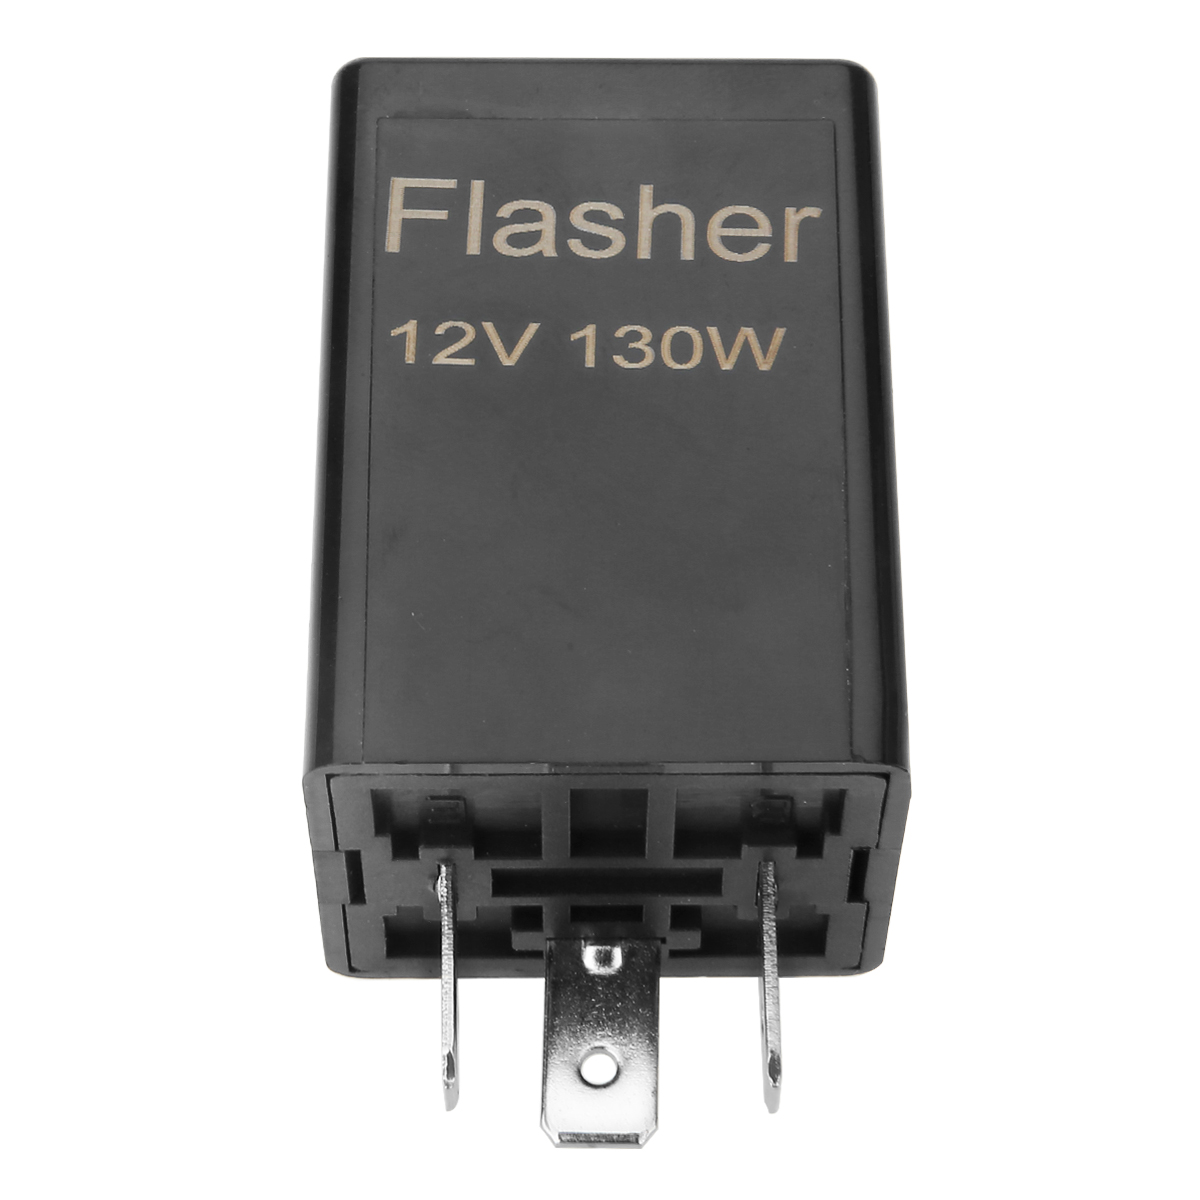 12V CF13 3 Pin Flasher Relays Universial Blink Flasher Relay Strobe For Car Motorcycle LED Turn Signal Lamp